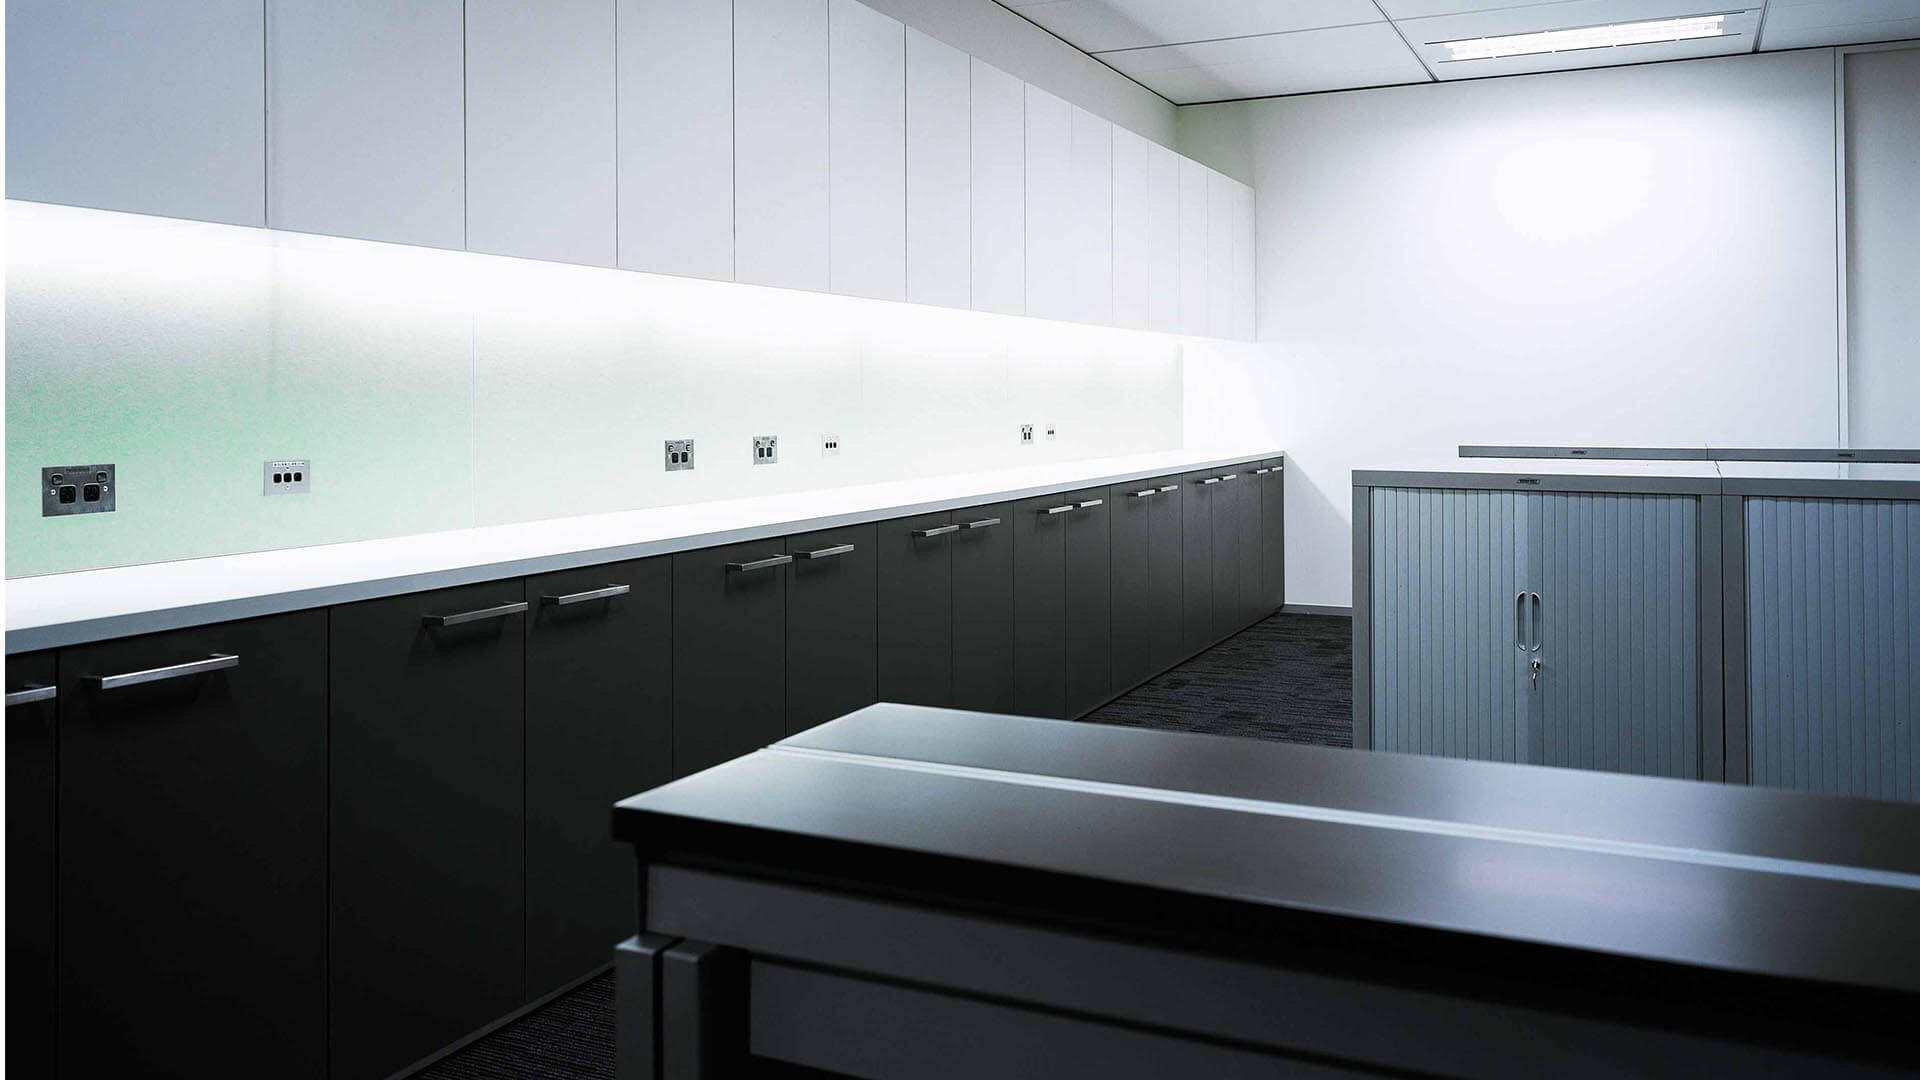 Quadrant Utilities Area by Dobsonei with cupboards and power outlets.